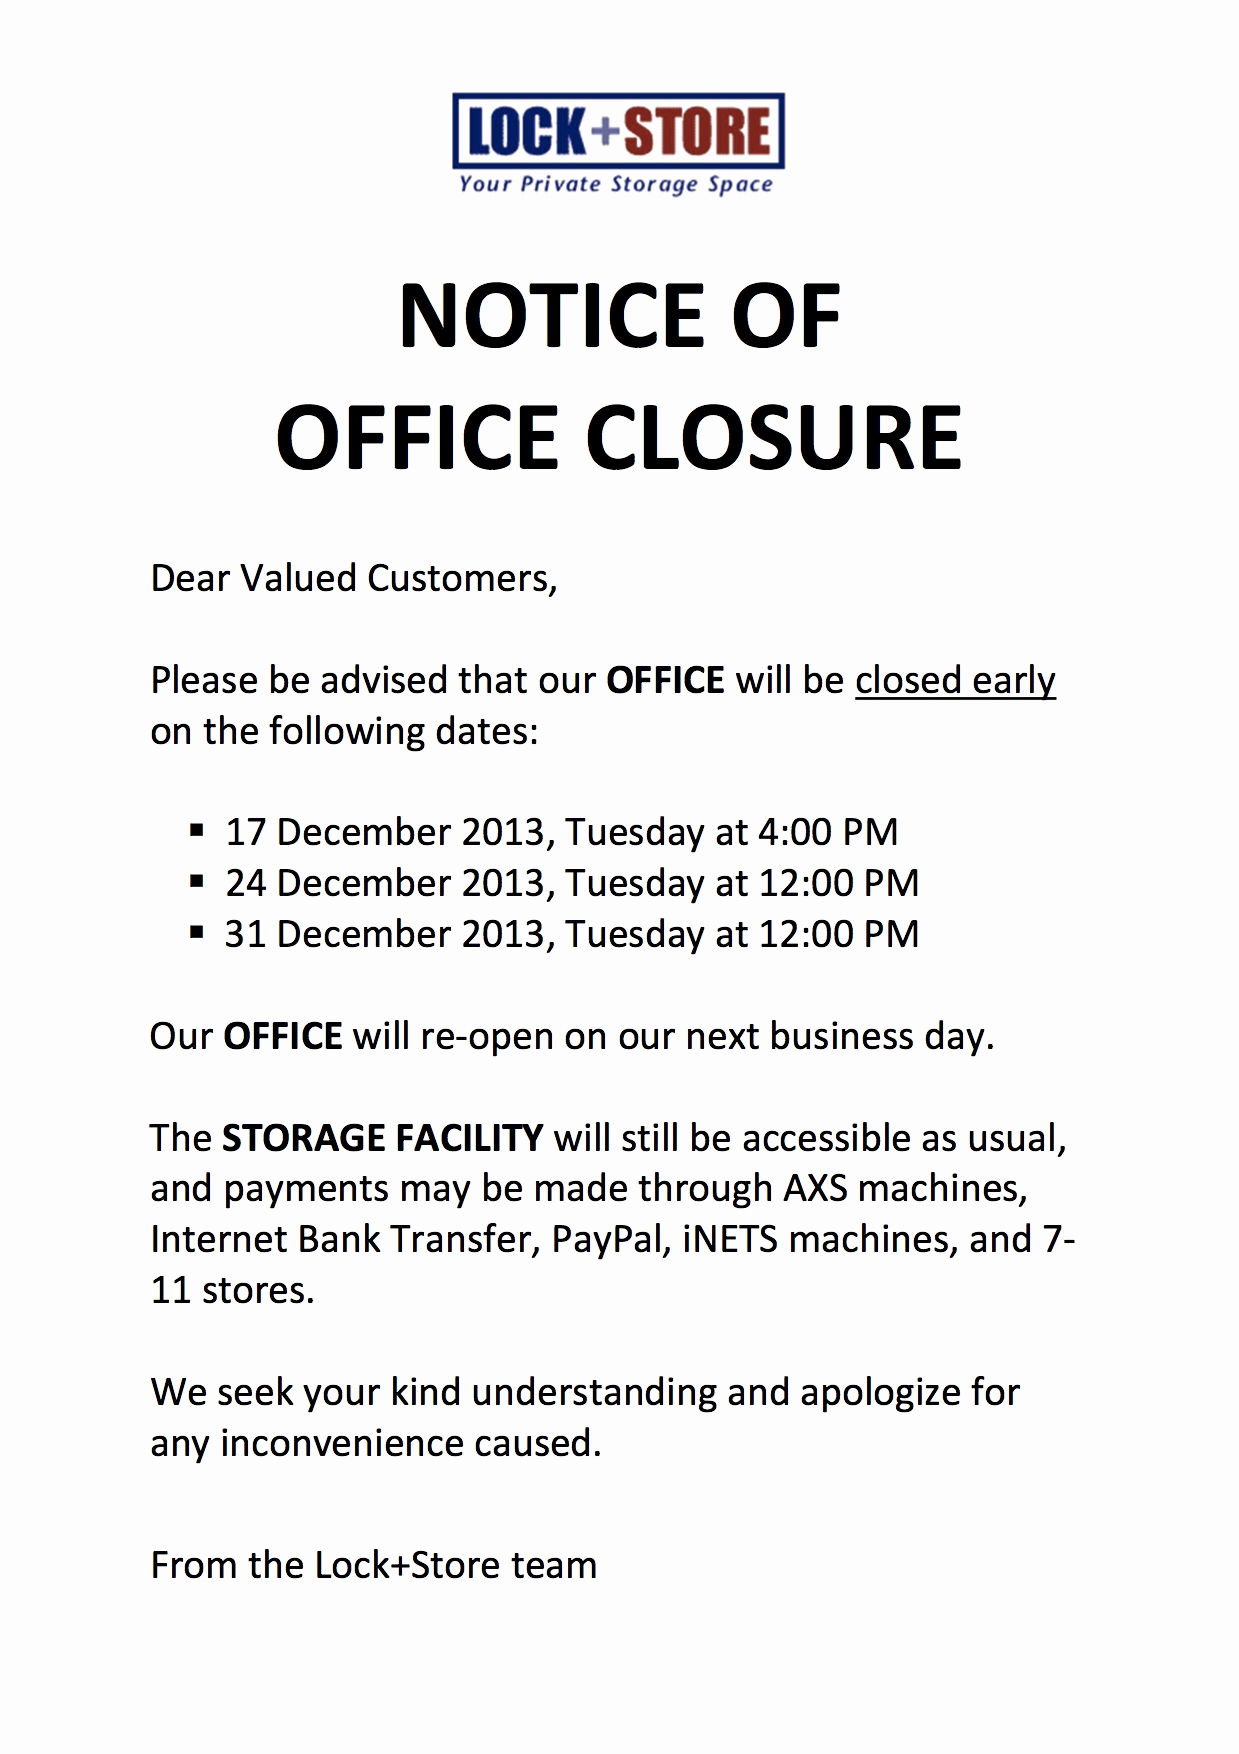 Holiday Closing Notice Template Best Of Lockandstore Lock Store